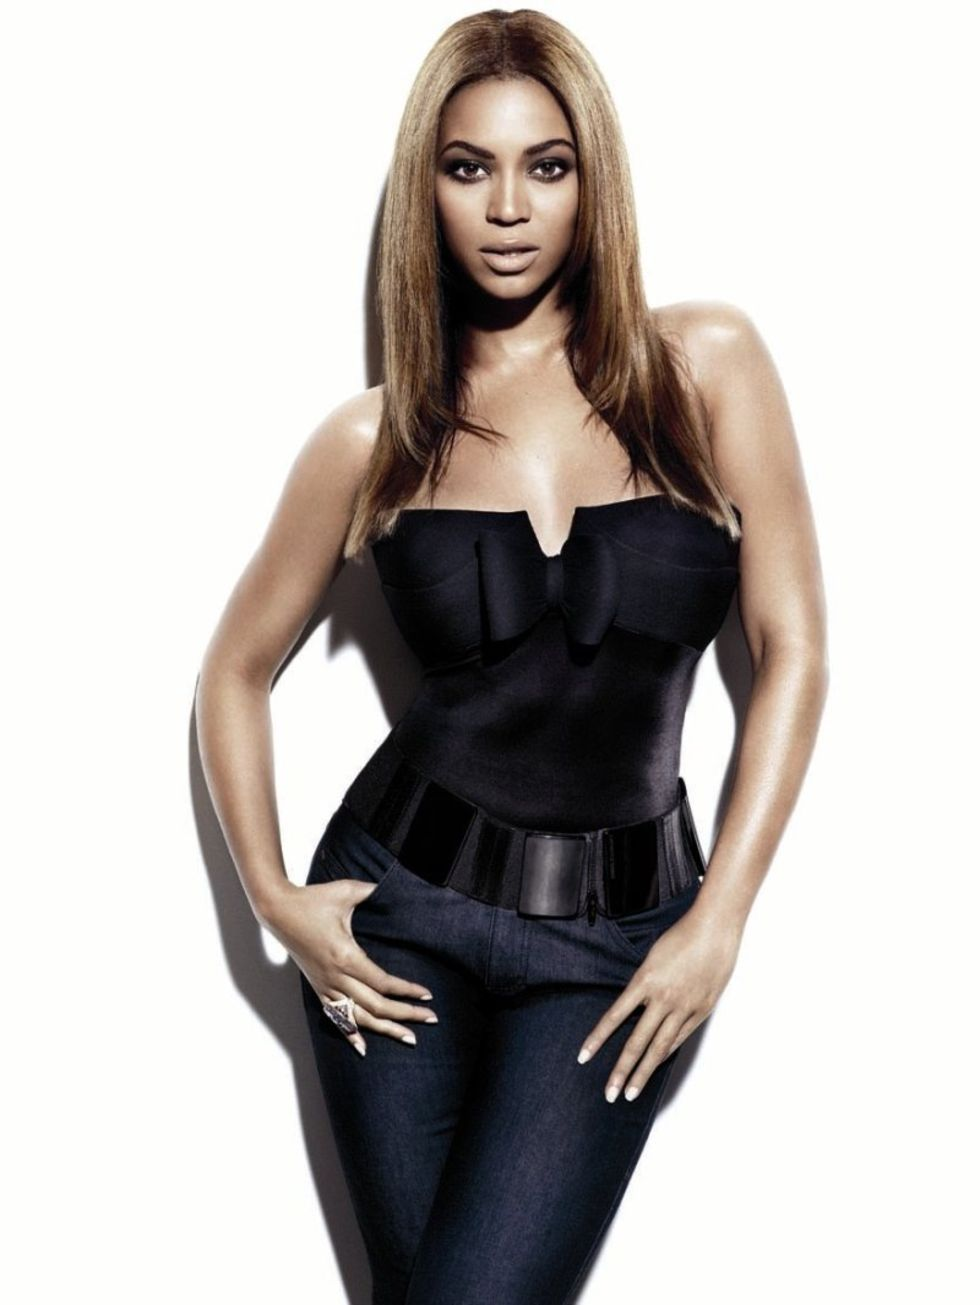 beyonce-marie-claire-magazine-october-2008-lq-01